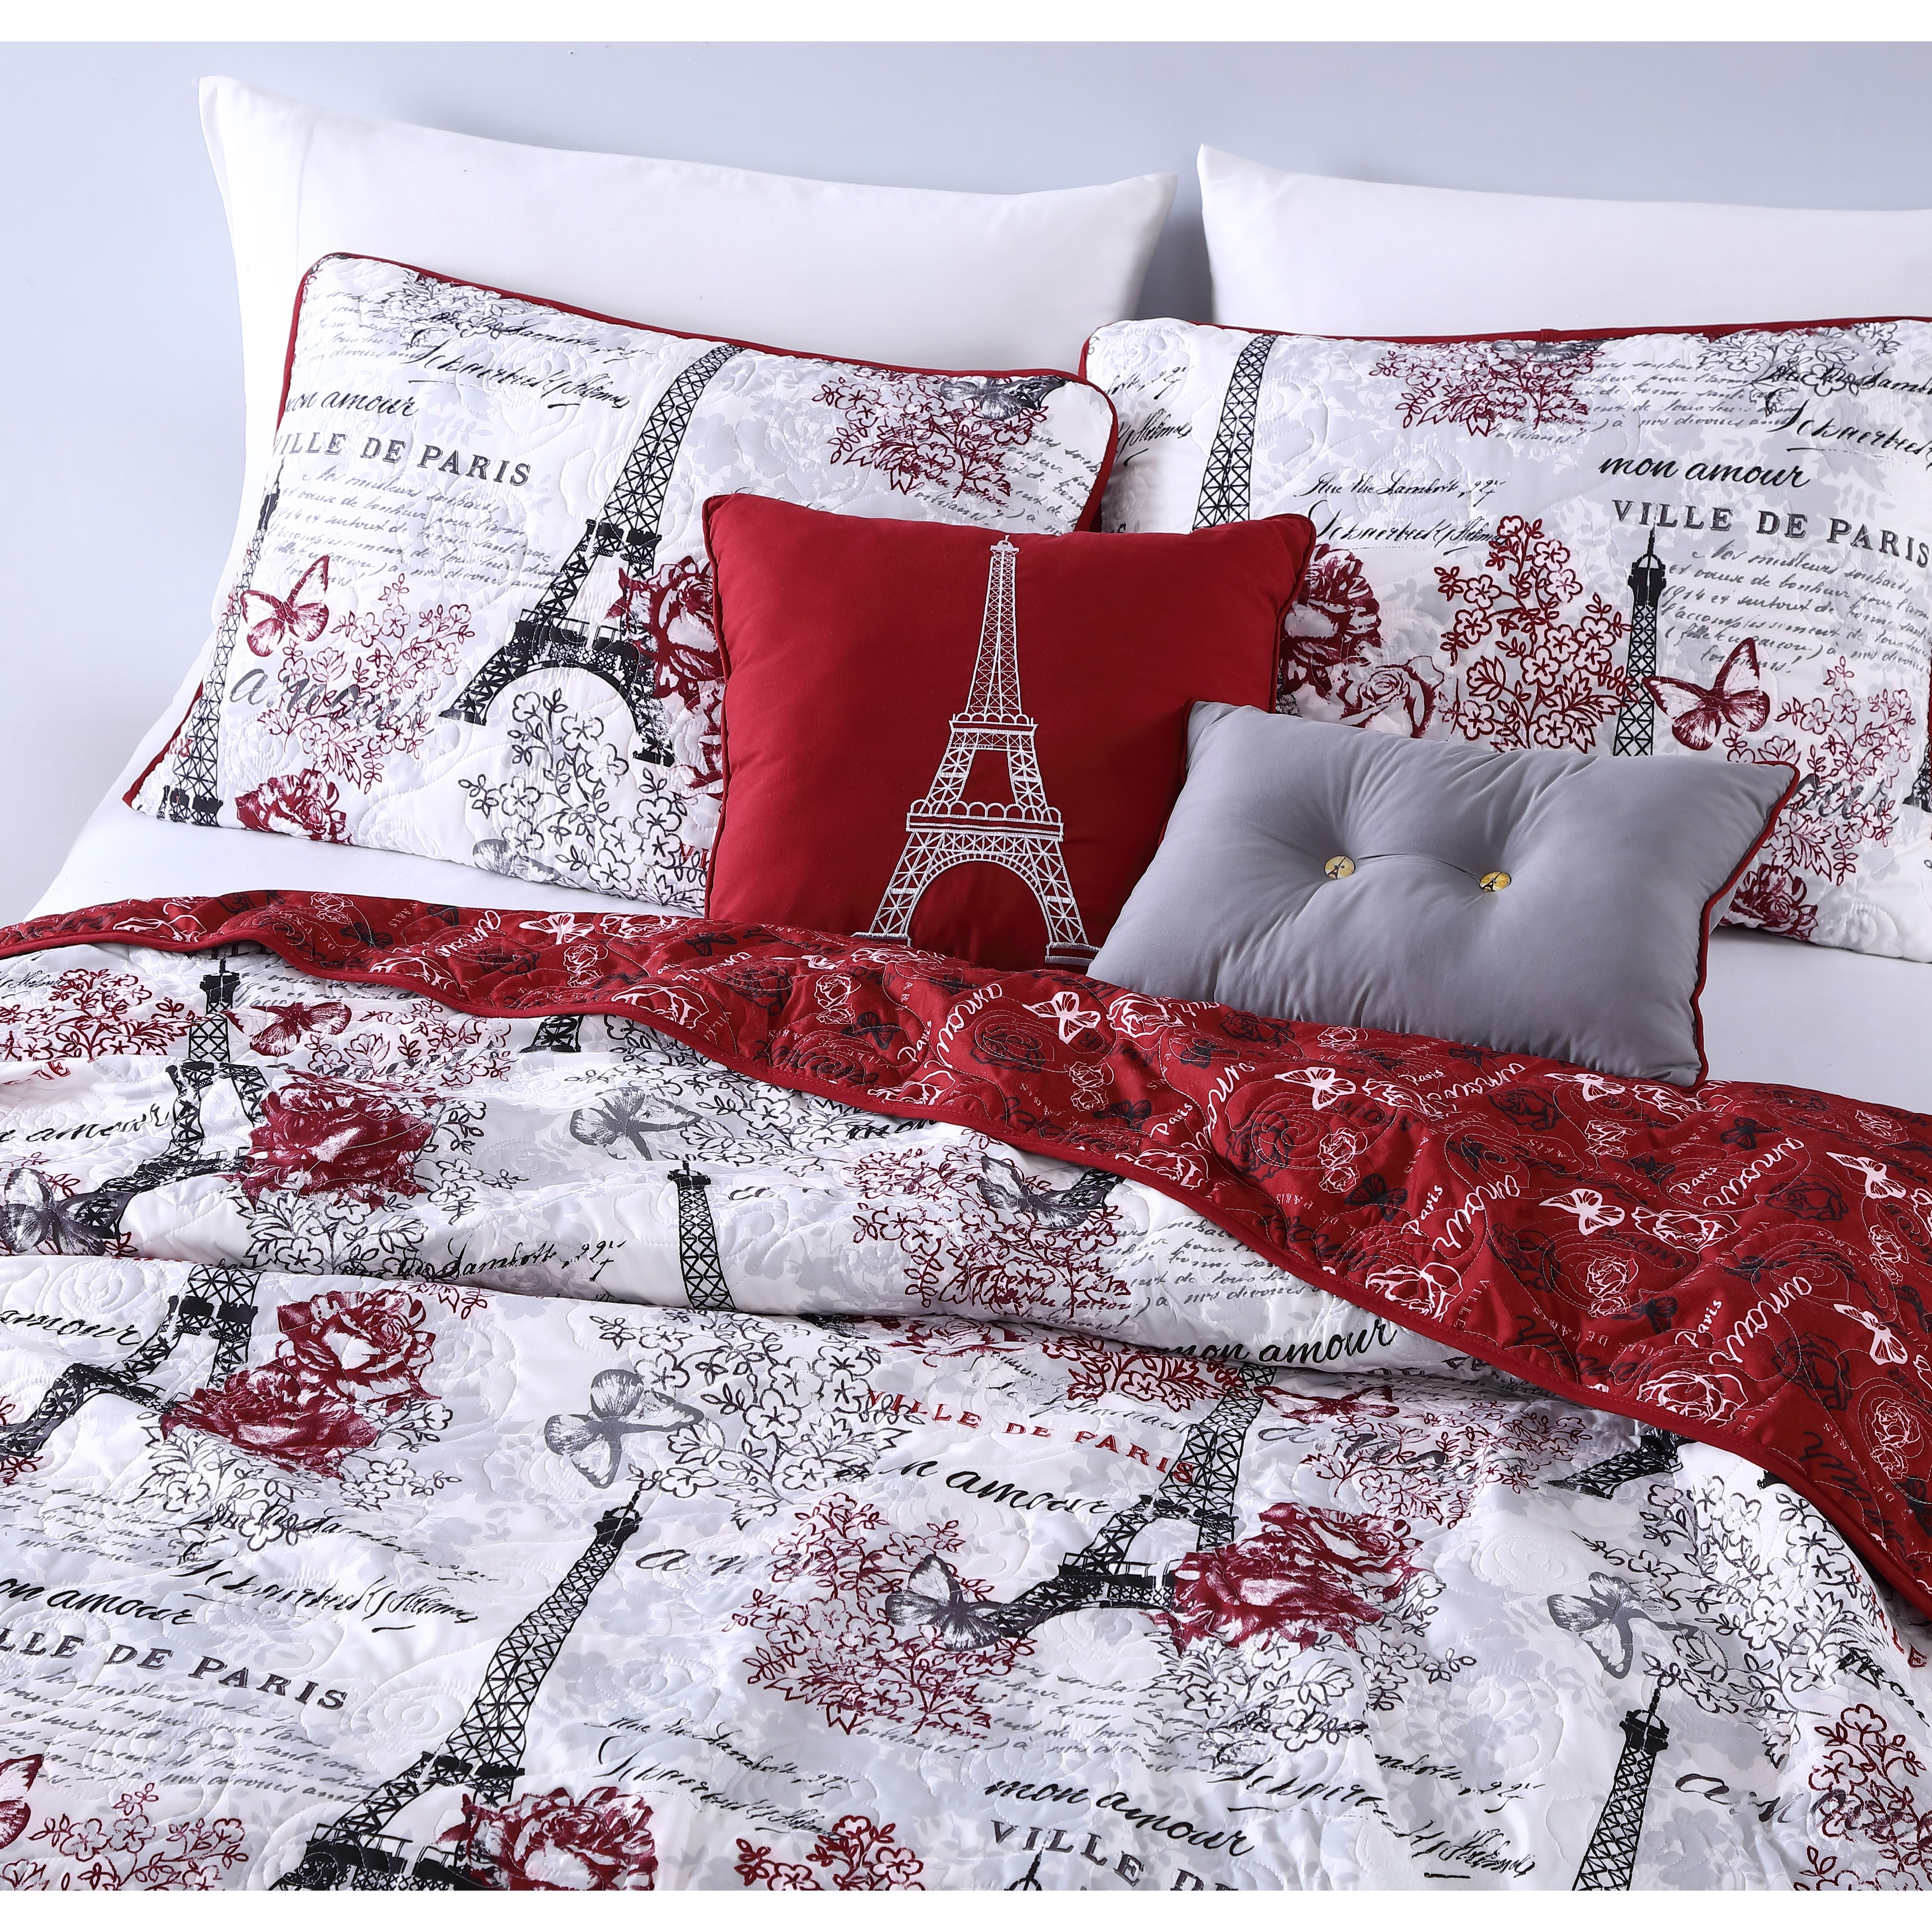 Amour 4 5 Pc Reversible Quilt Set With Decorative Pillows On Sale Overstock 16279586